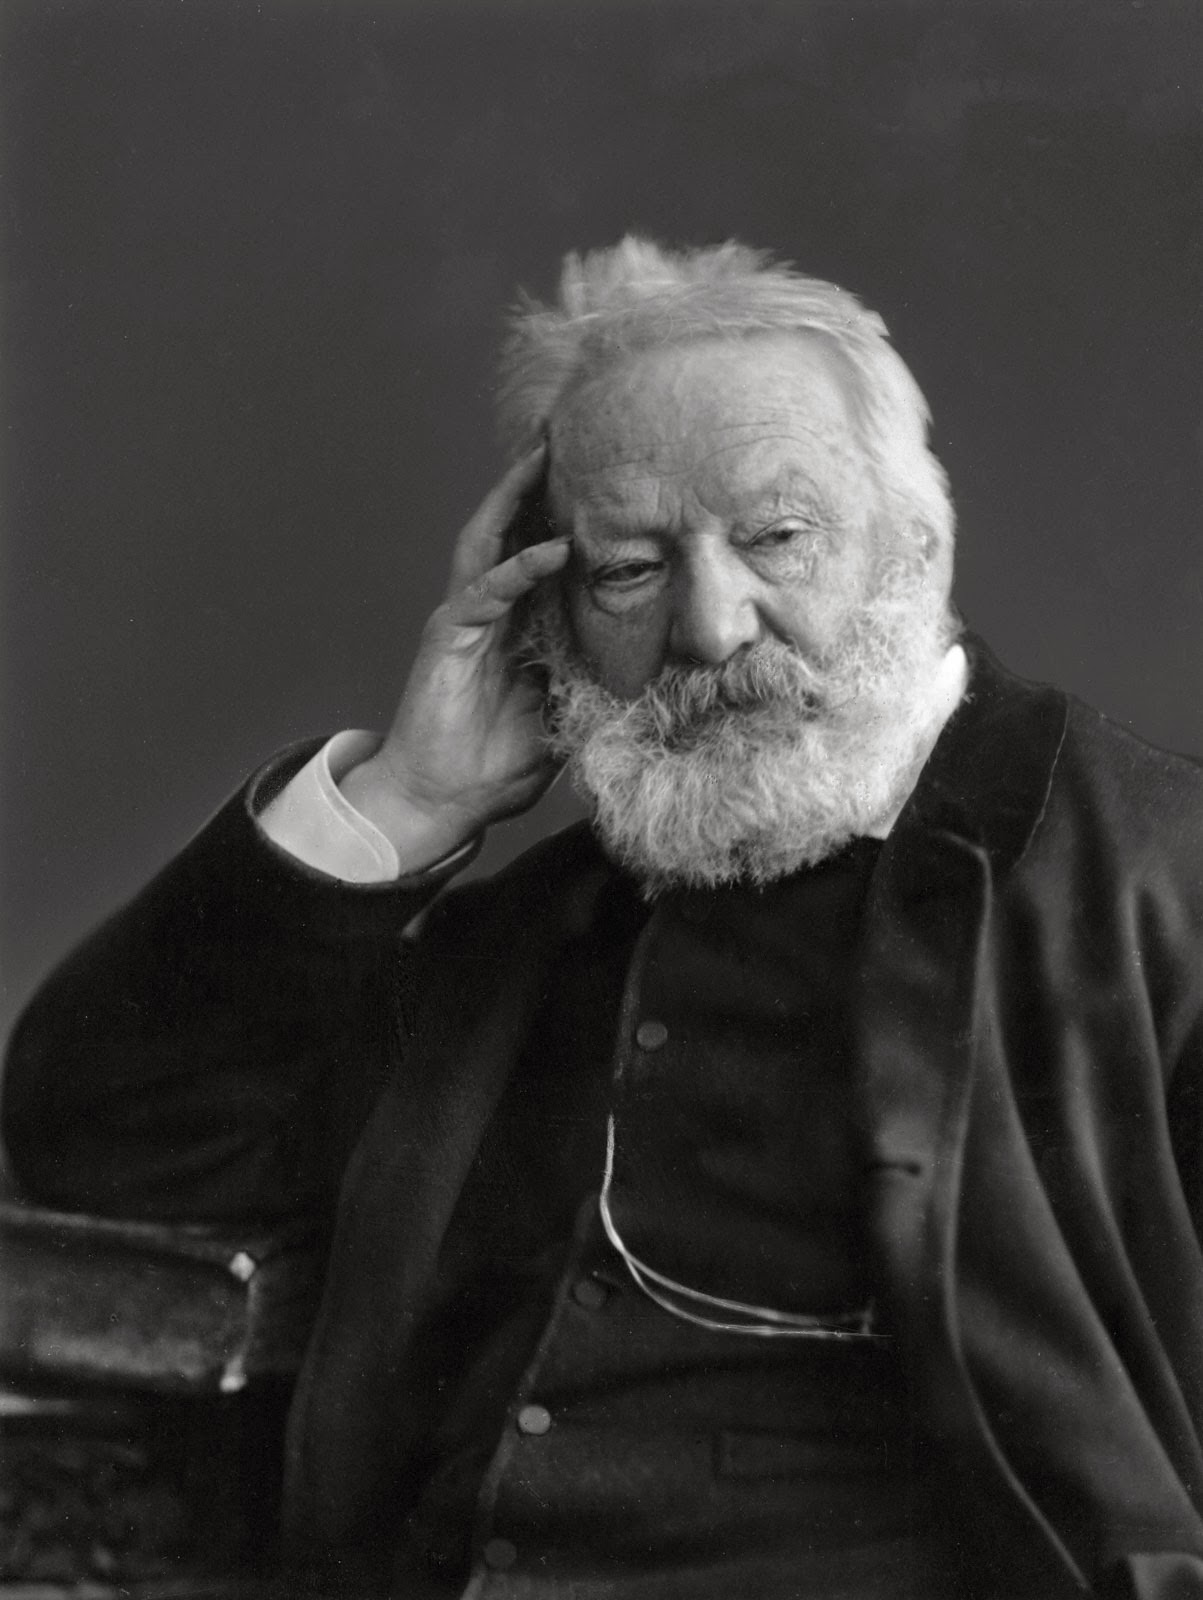 victor hugo essay The following essay was originally printed in victor hugo madame duclaux london: constable and company, 1921 the france into which victor hugo was born was not unlike our recent world of the great war.